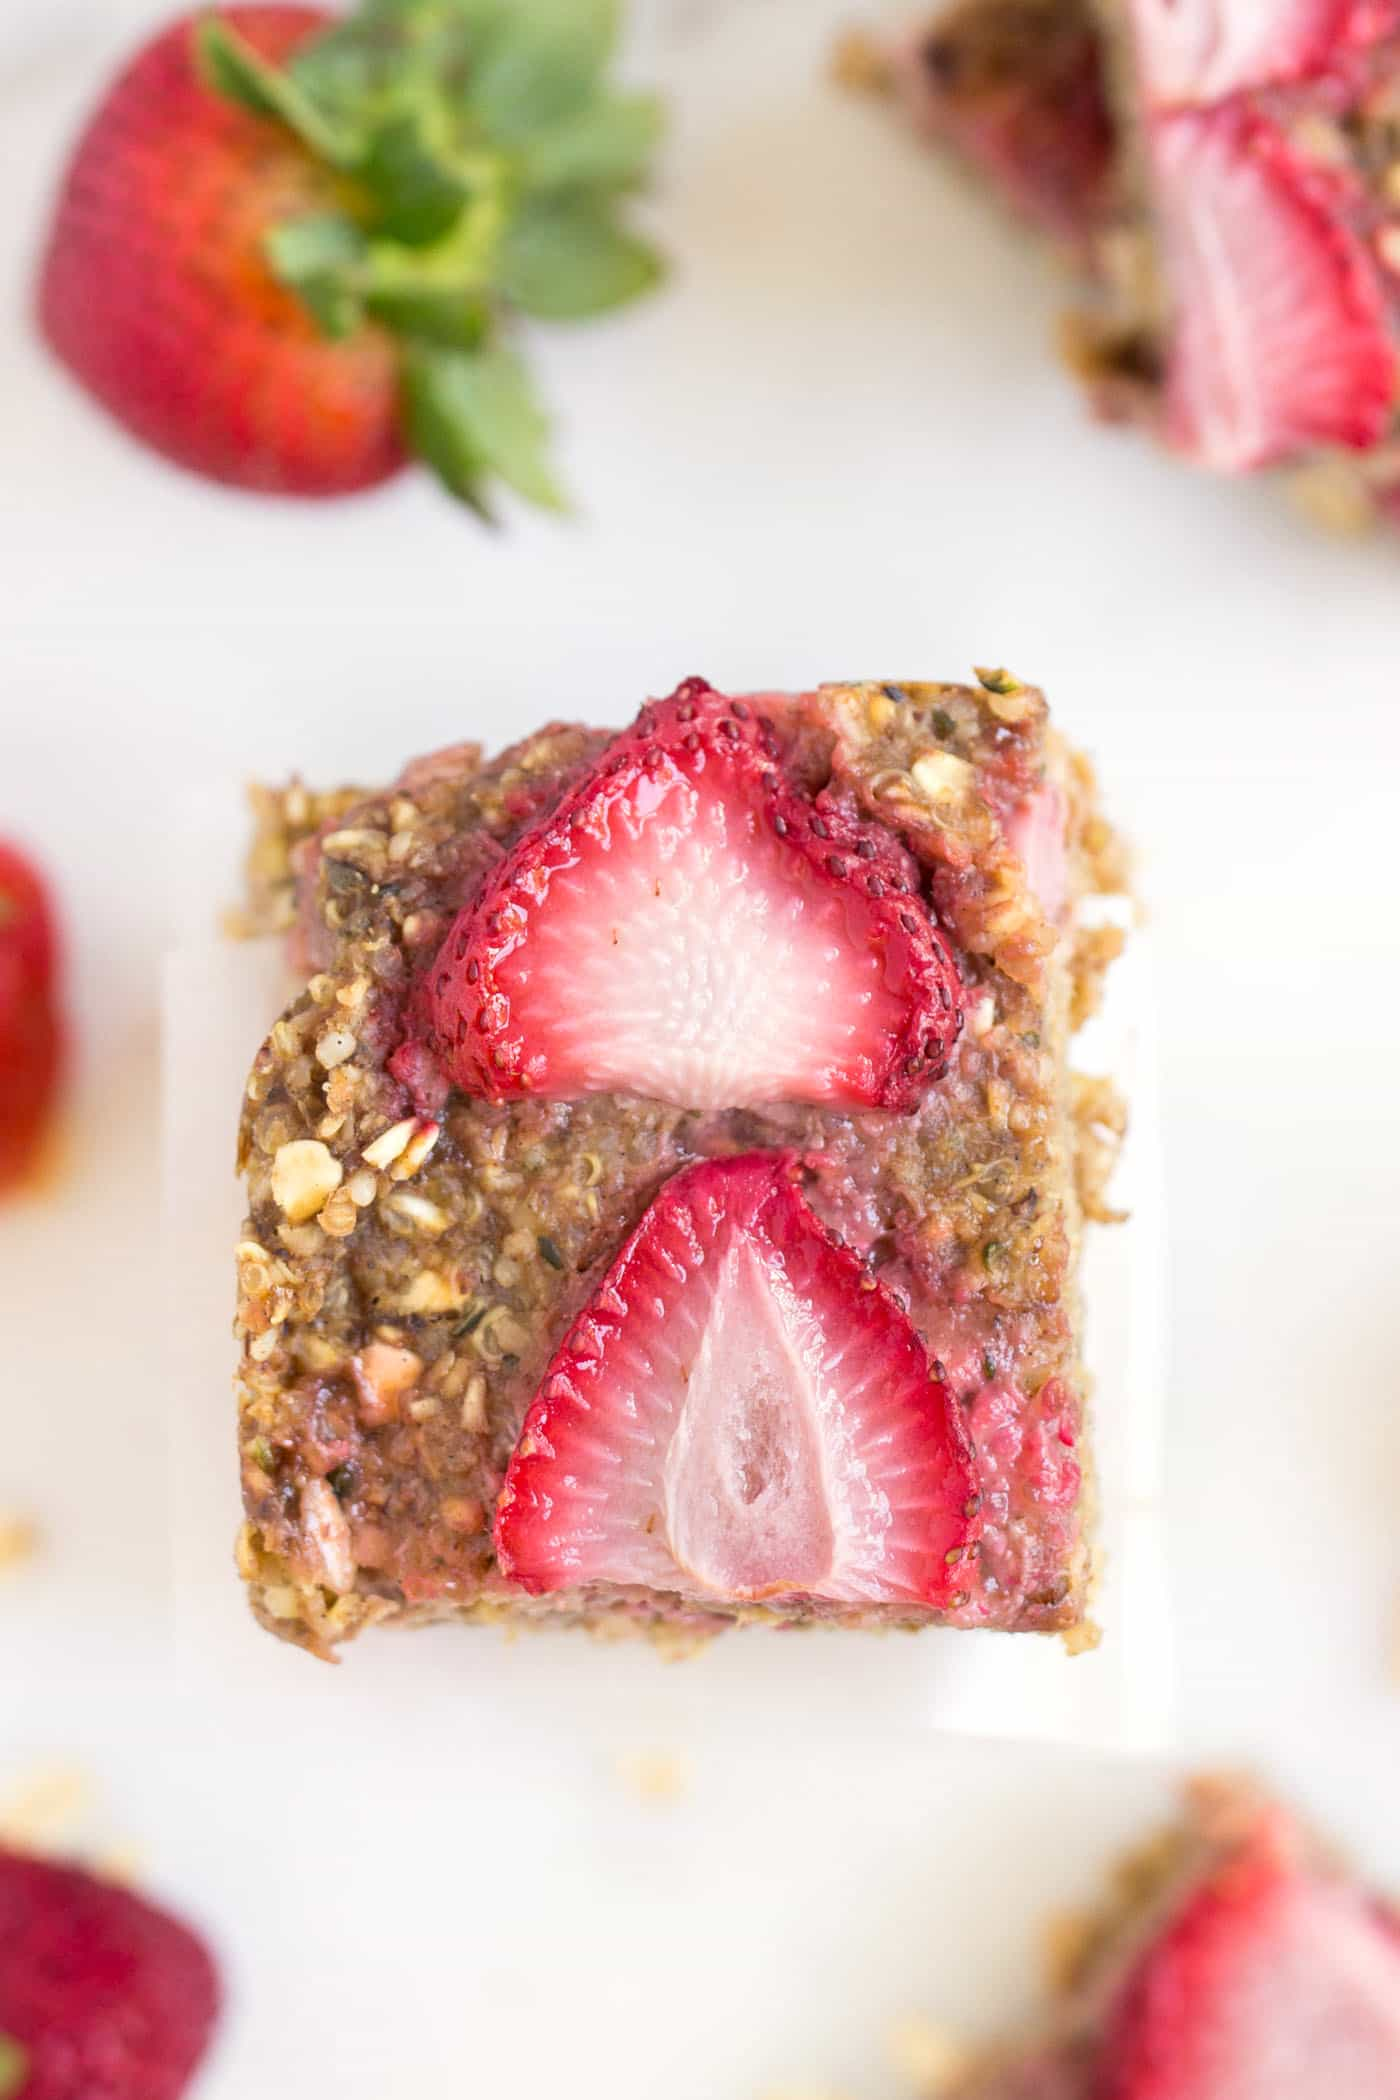 These strawberry quinoa breakfast bars are FLOURLESS, packed with protein and fiber, and are the perfect portable breakfast!